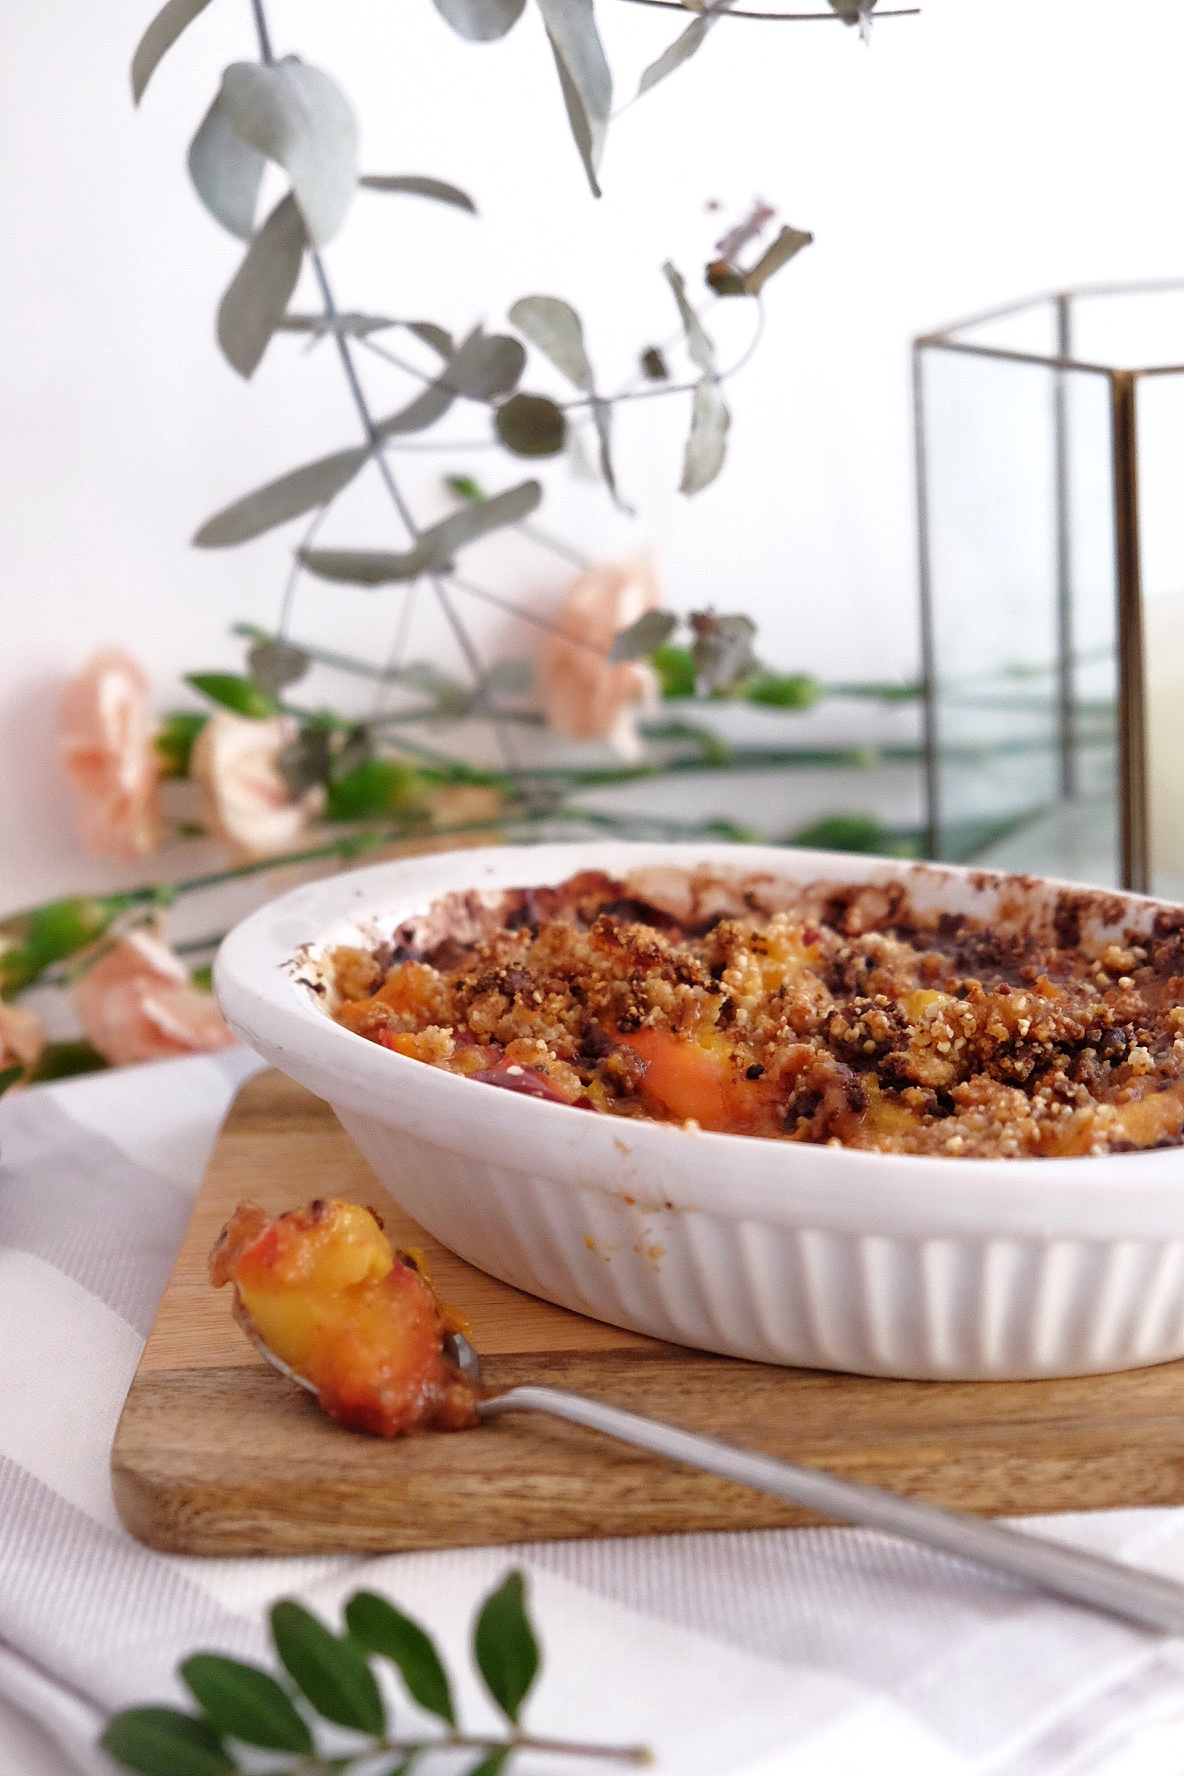 Apricots and nectarine crumble made with love